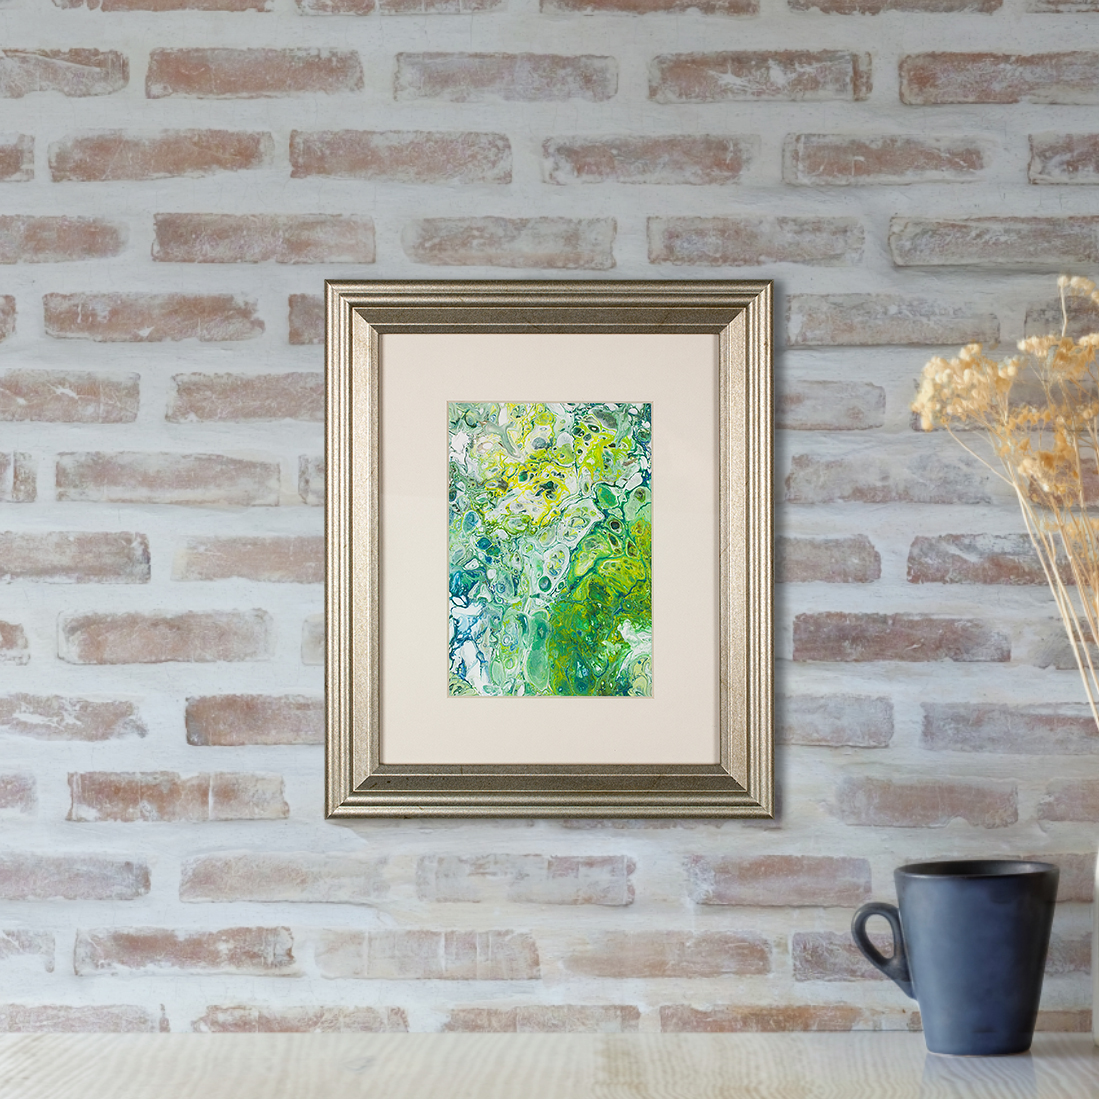 Organic - A Green Abstract Flow Painting by Heather Miller by WhiteRose's Art